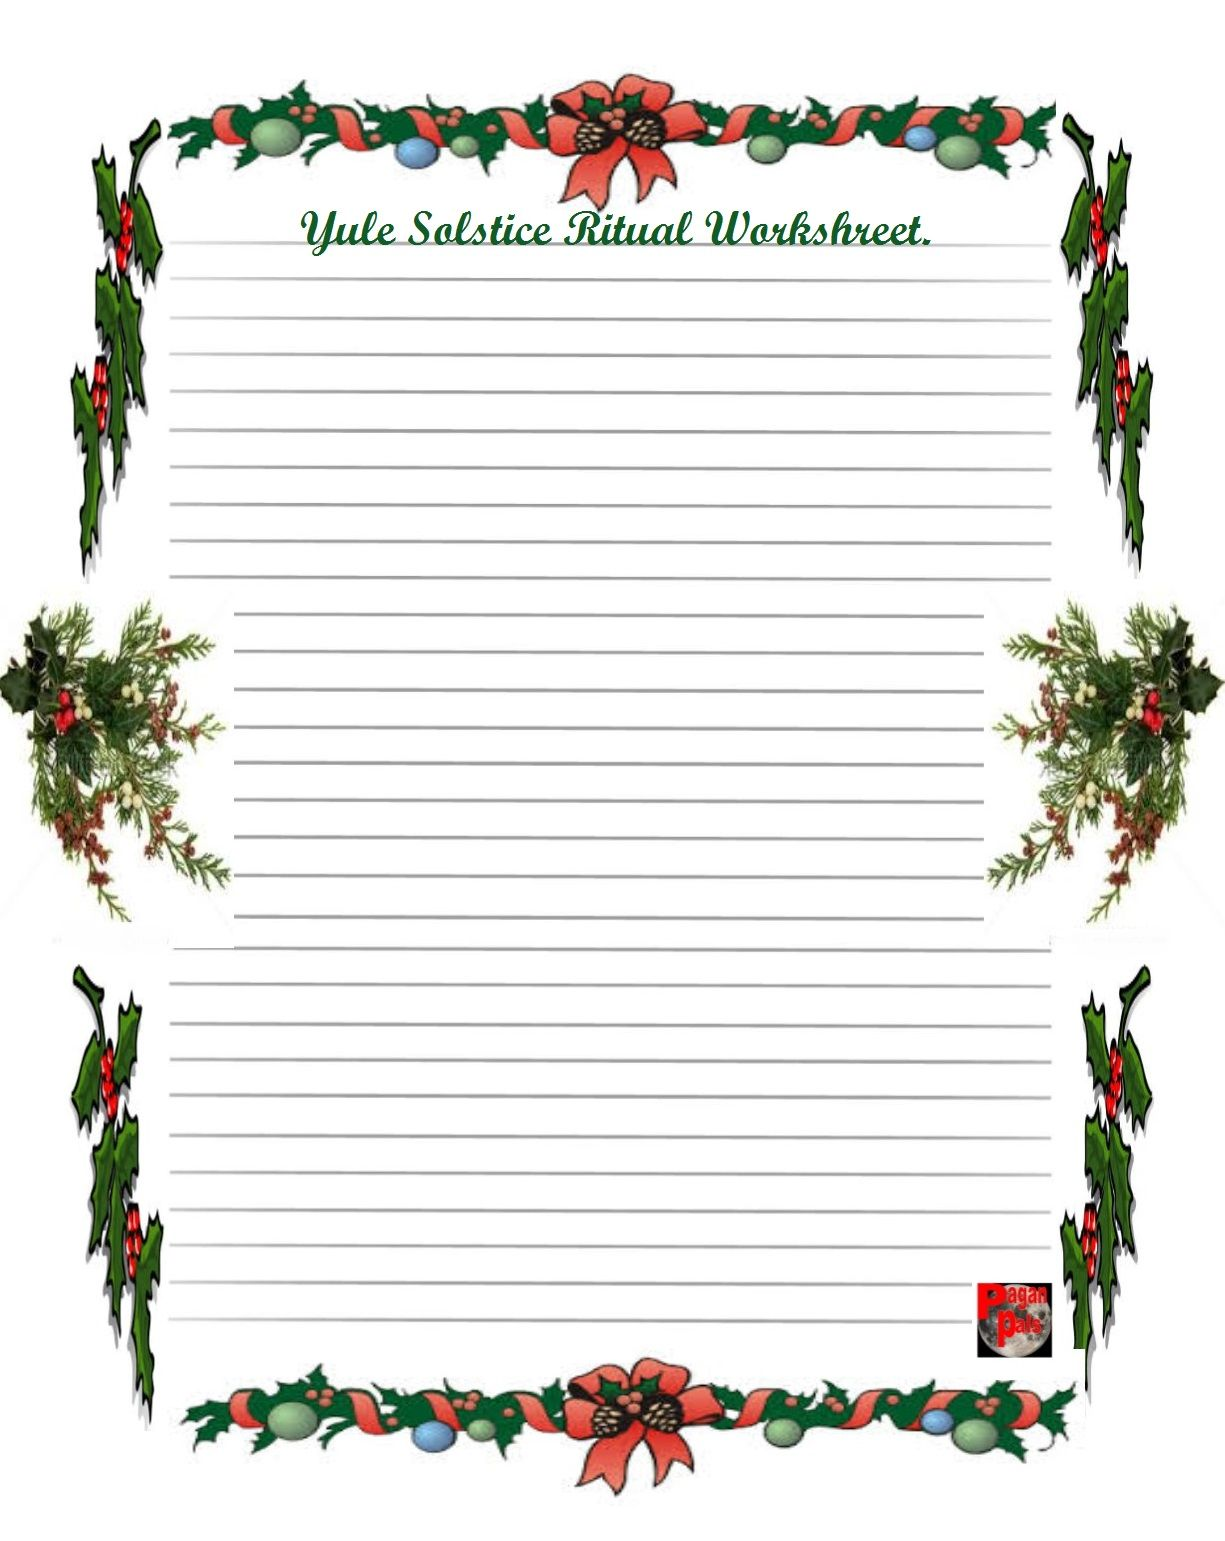 Pagan Pals Yule Solstice Worksheet